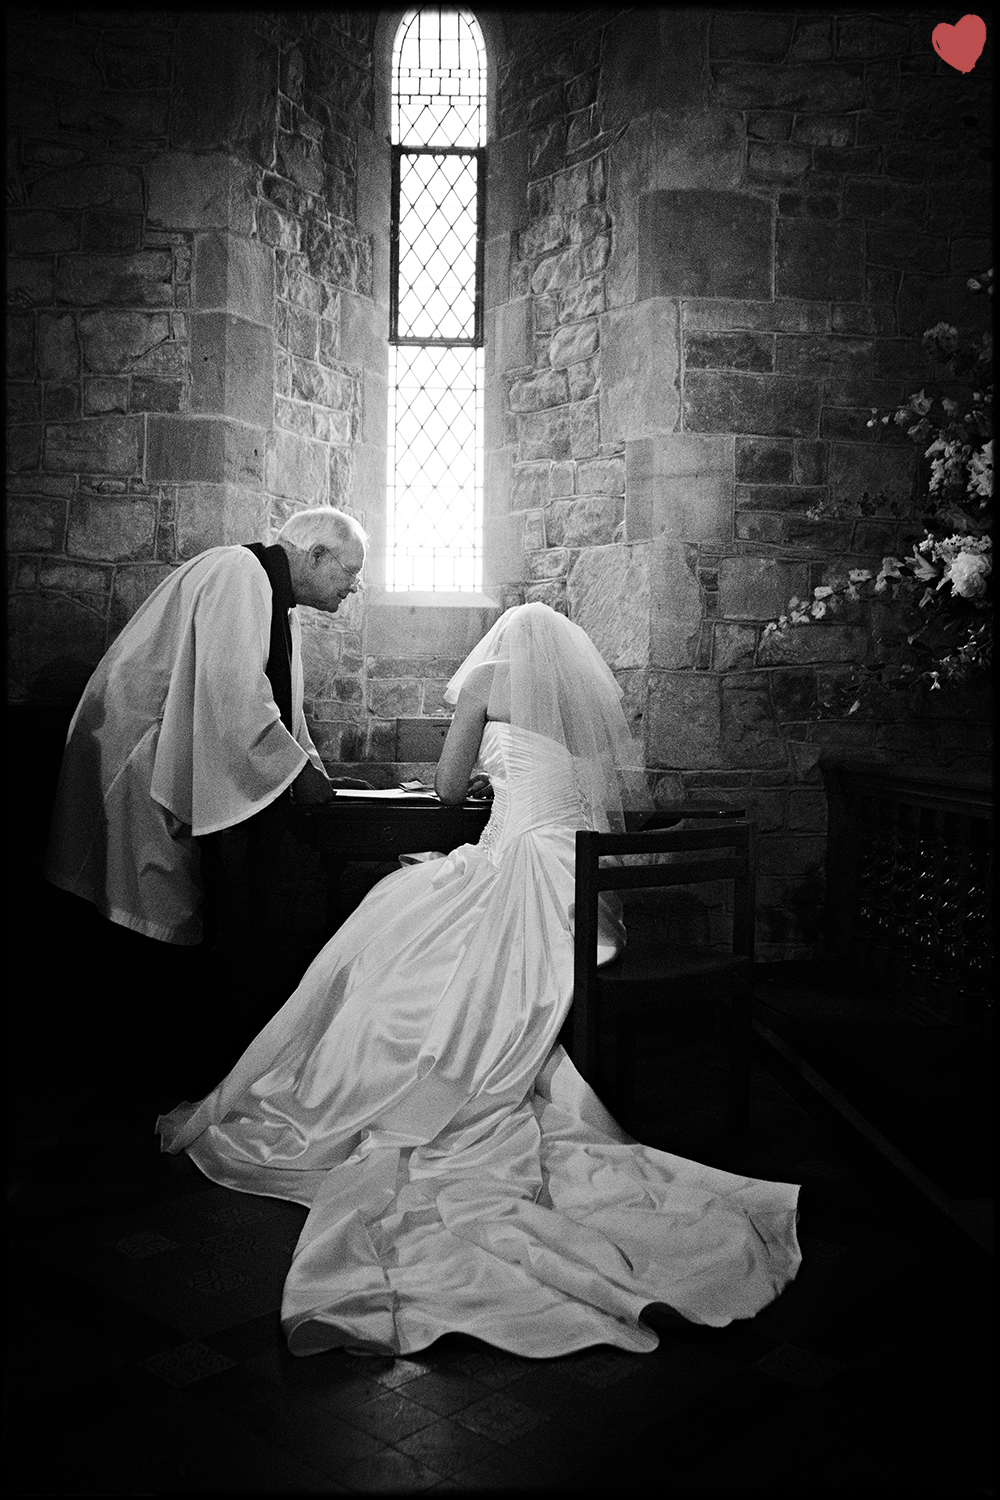 Wedding Photography: Sgning of the Register